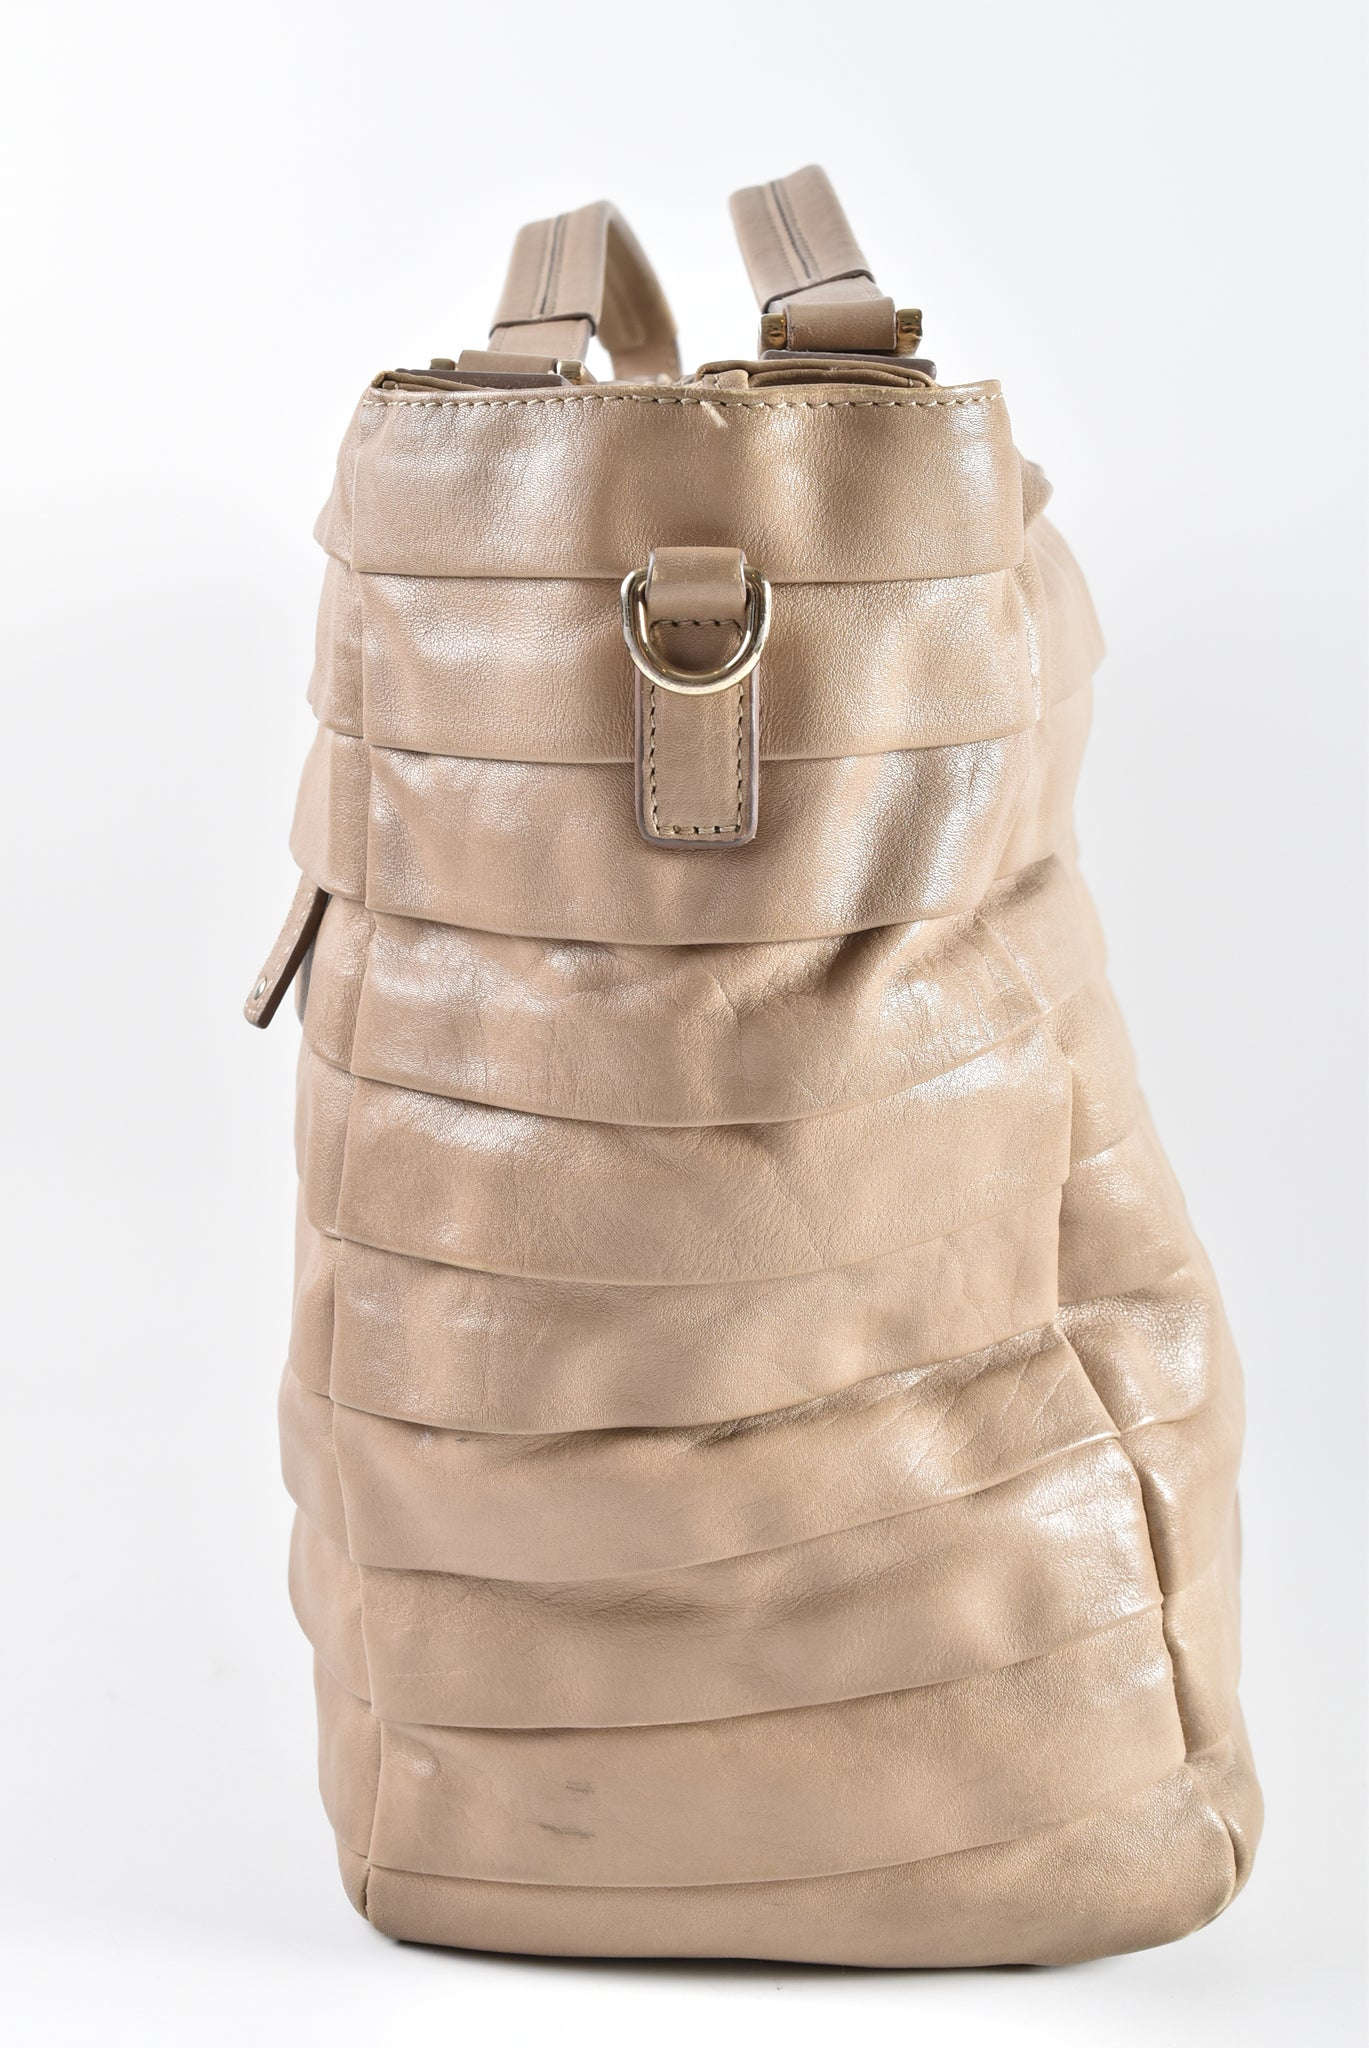 Anya Hindmarch Beige Pleated Leather Shoulder Bag - Glampot